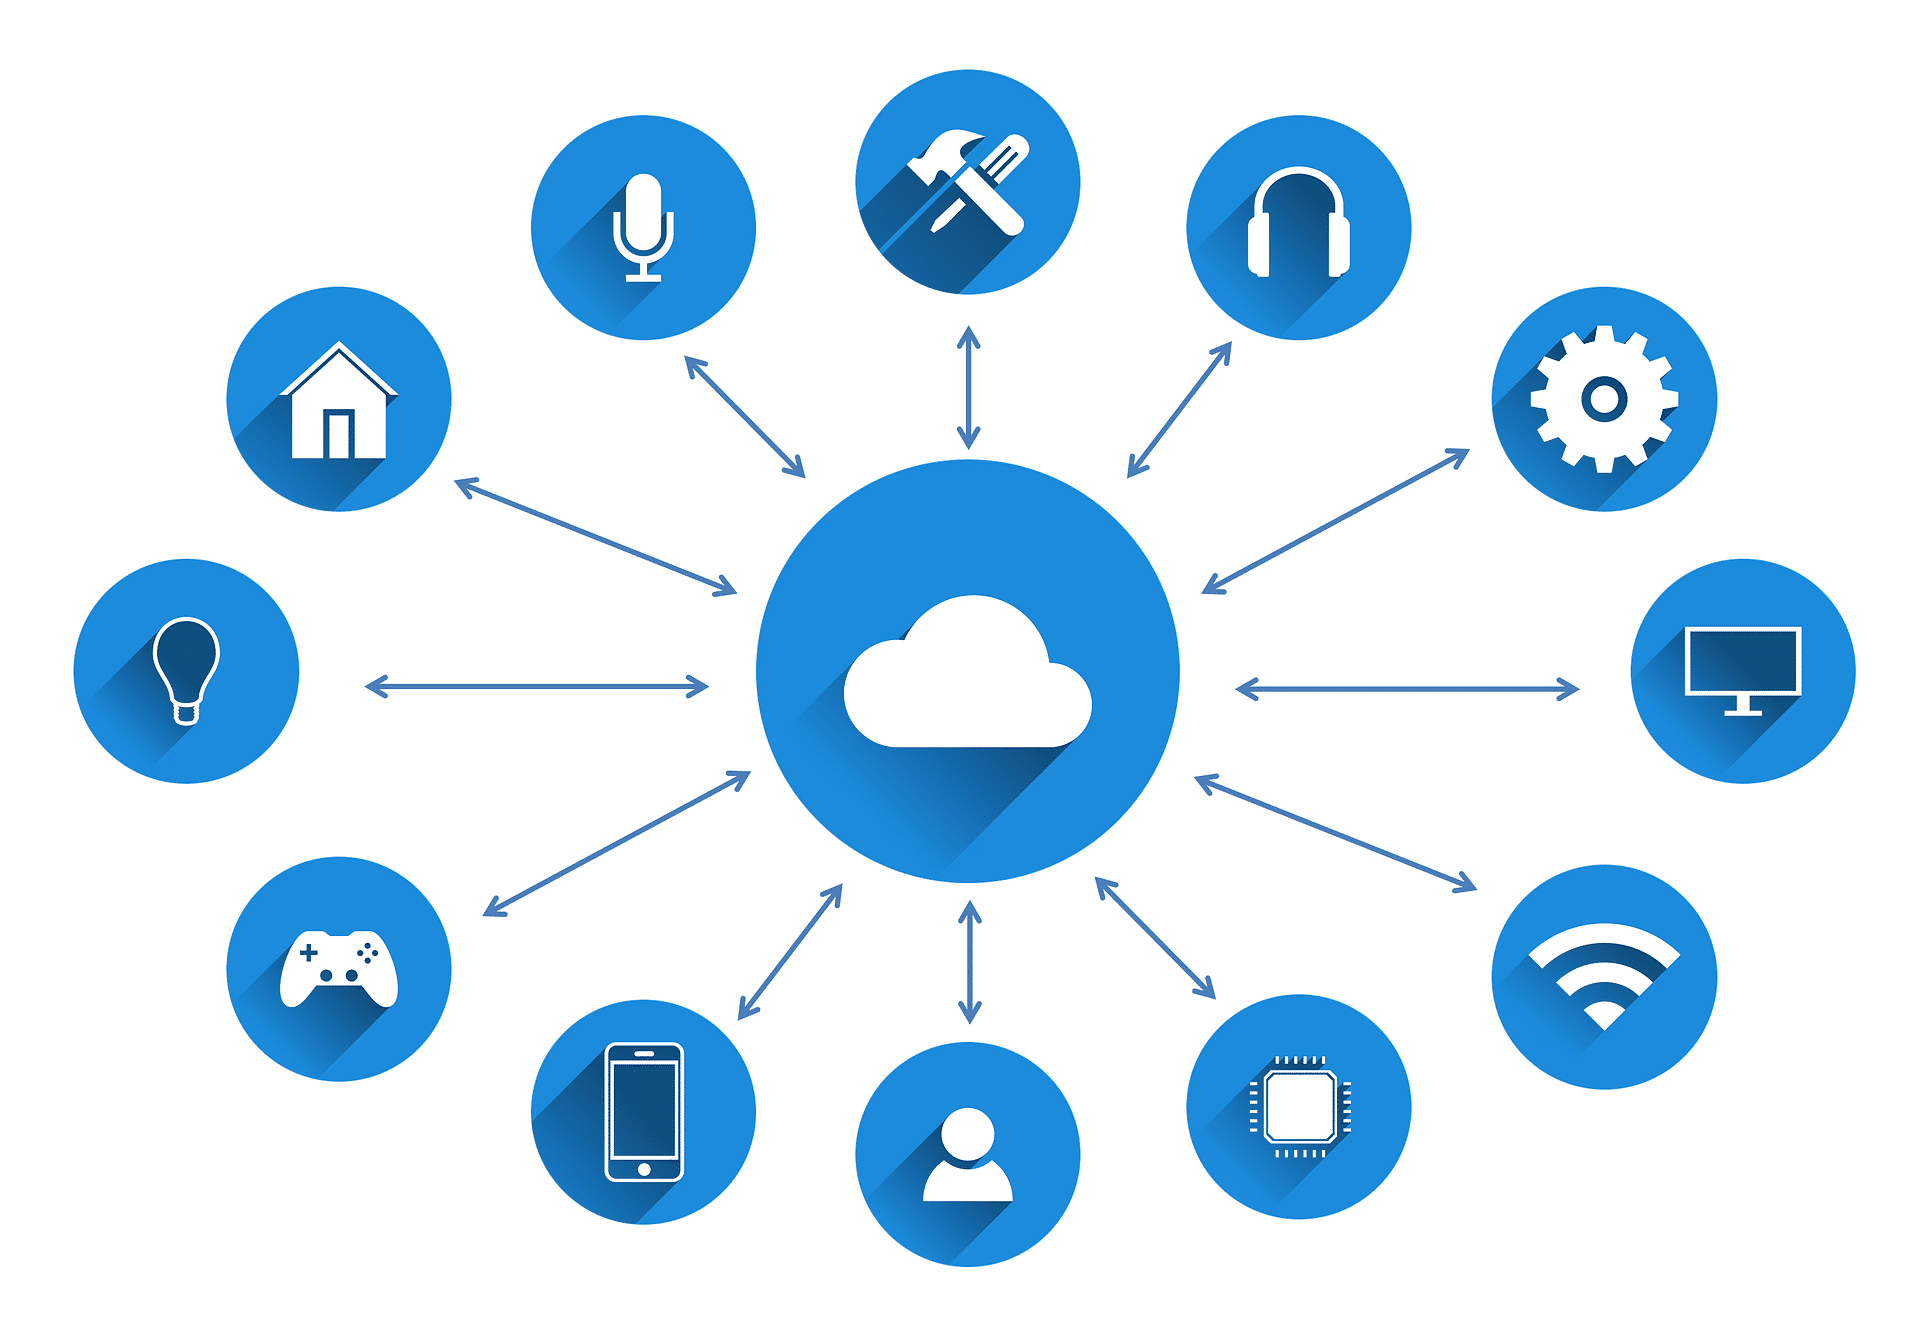 The cloud can be accessed anywhere from any device, ensuring teams stay connected.